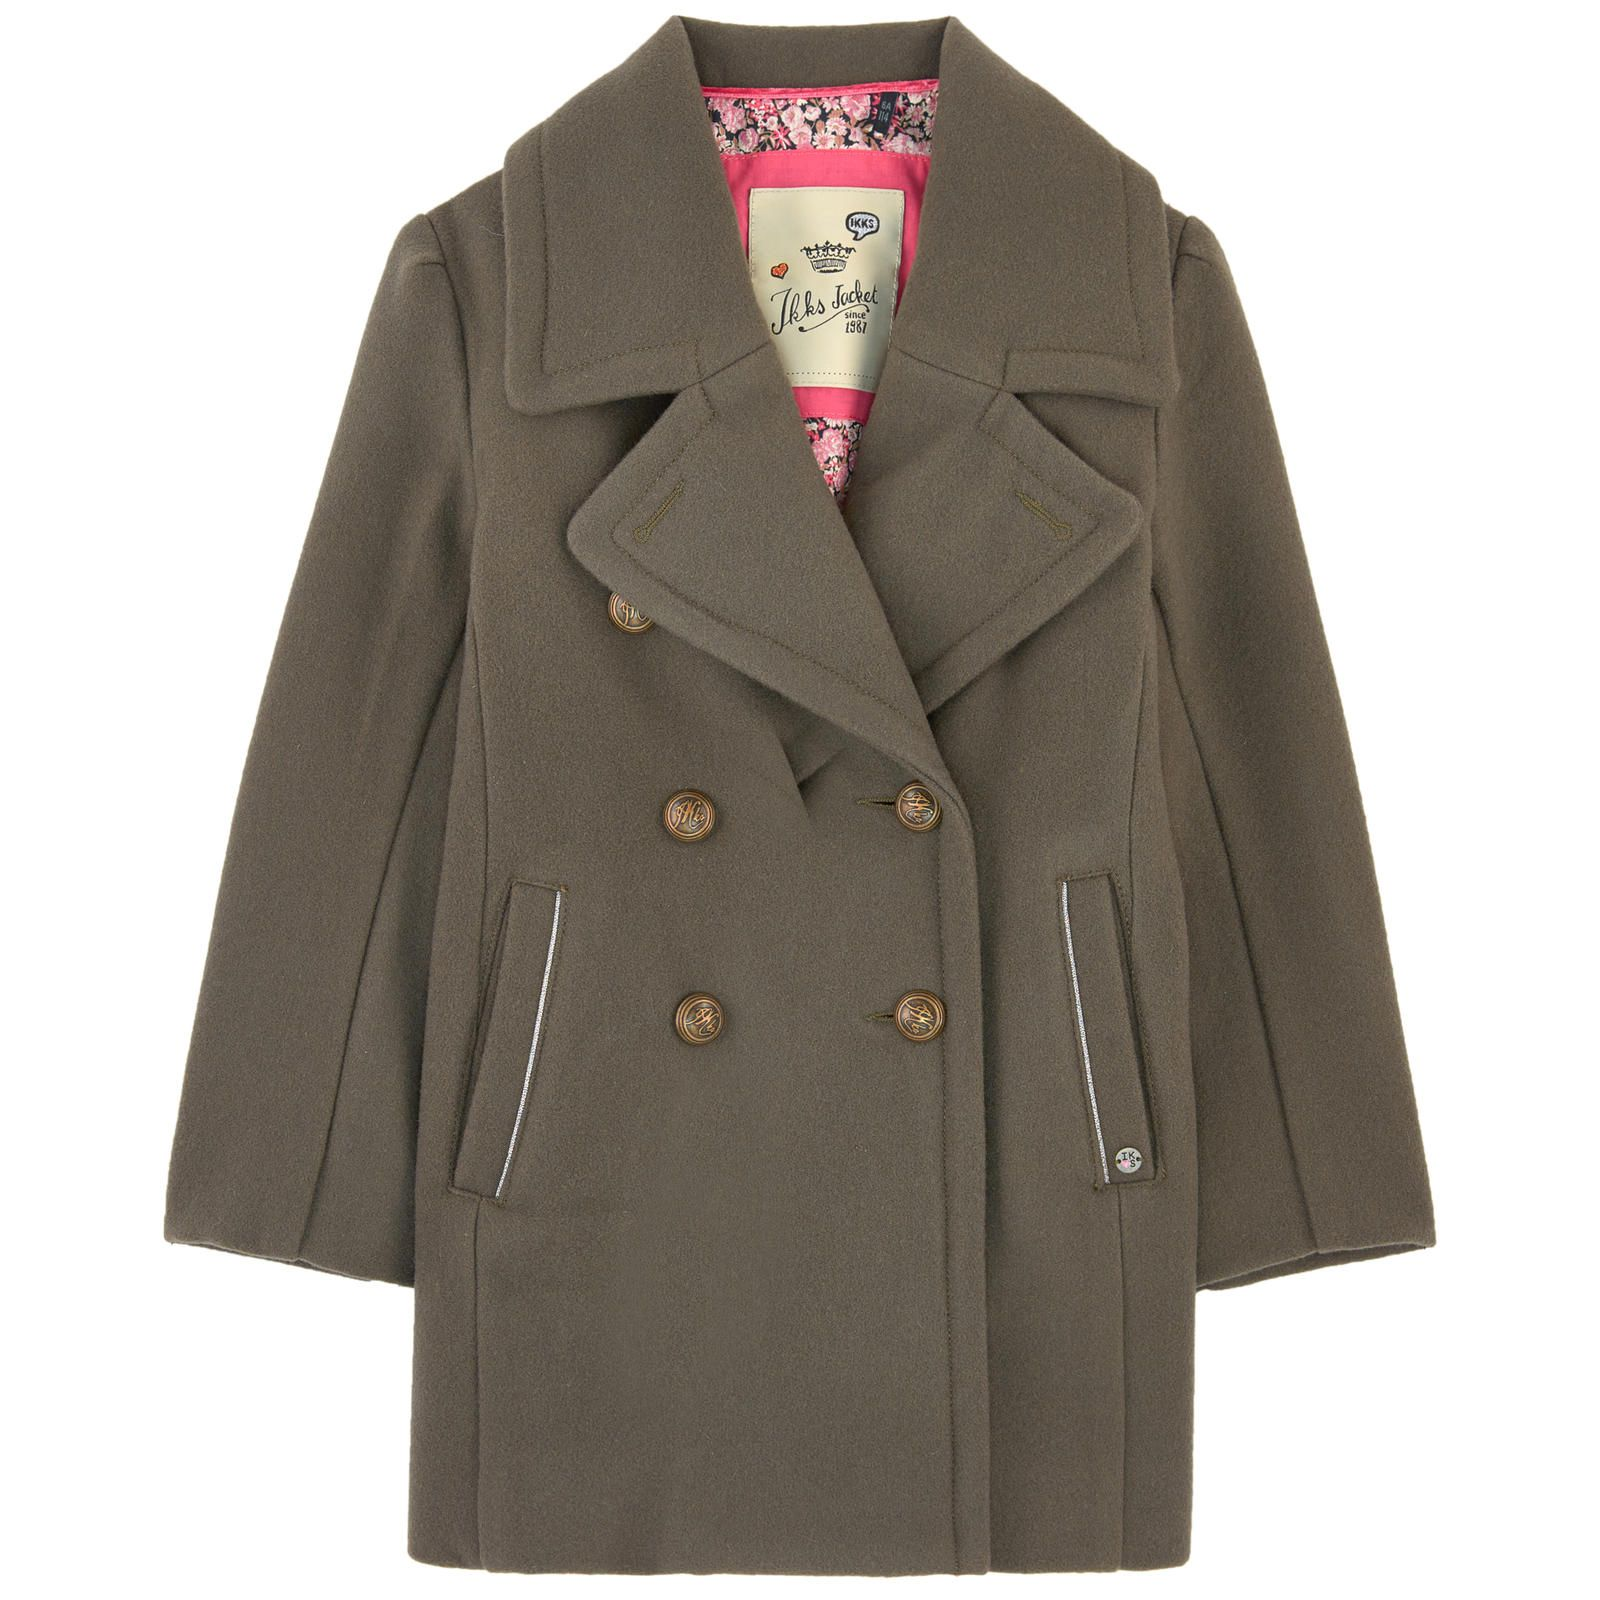 Wool blend cloth Cotton lining Warm item Jacket collar Long sleeves Side pockets Rear slit Two button straps Logo buttons Piping on the trims - $ 206